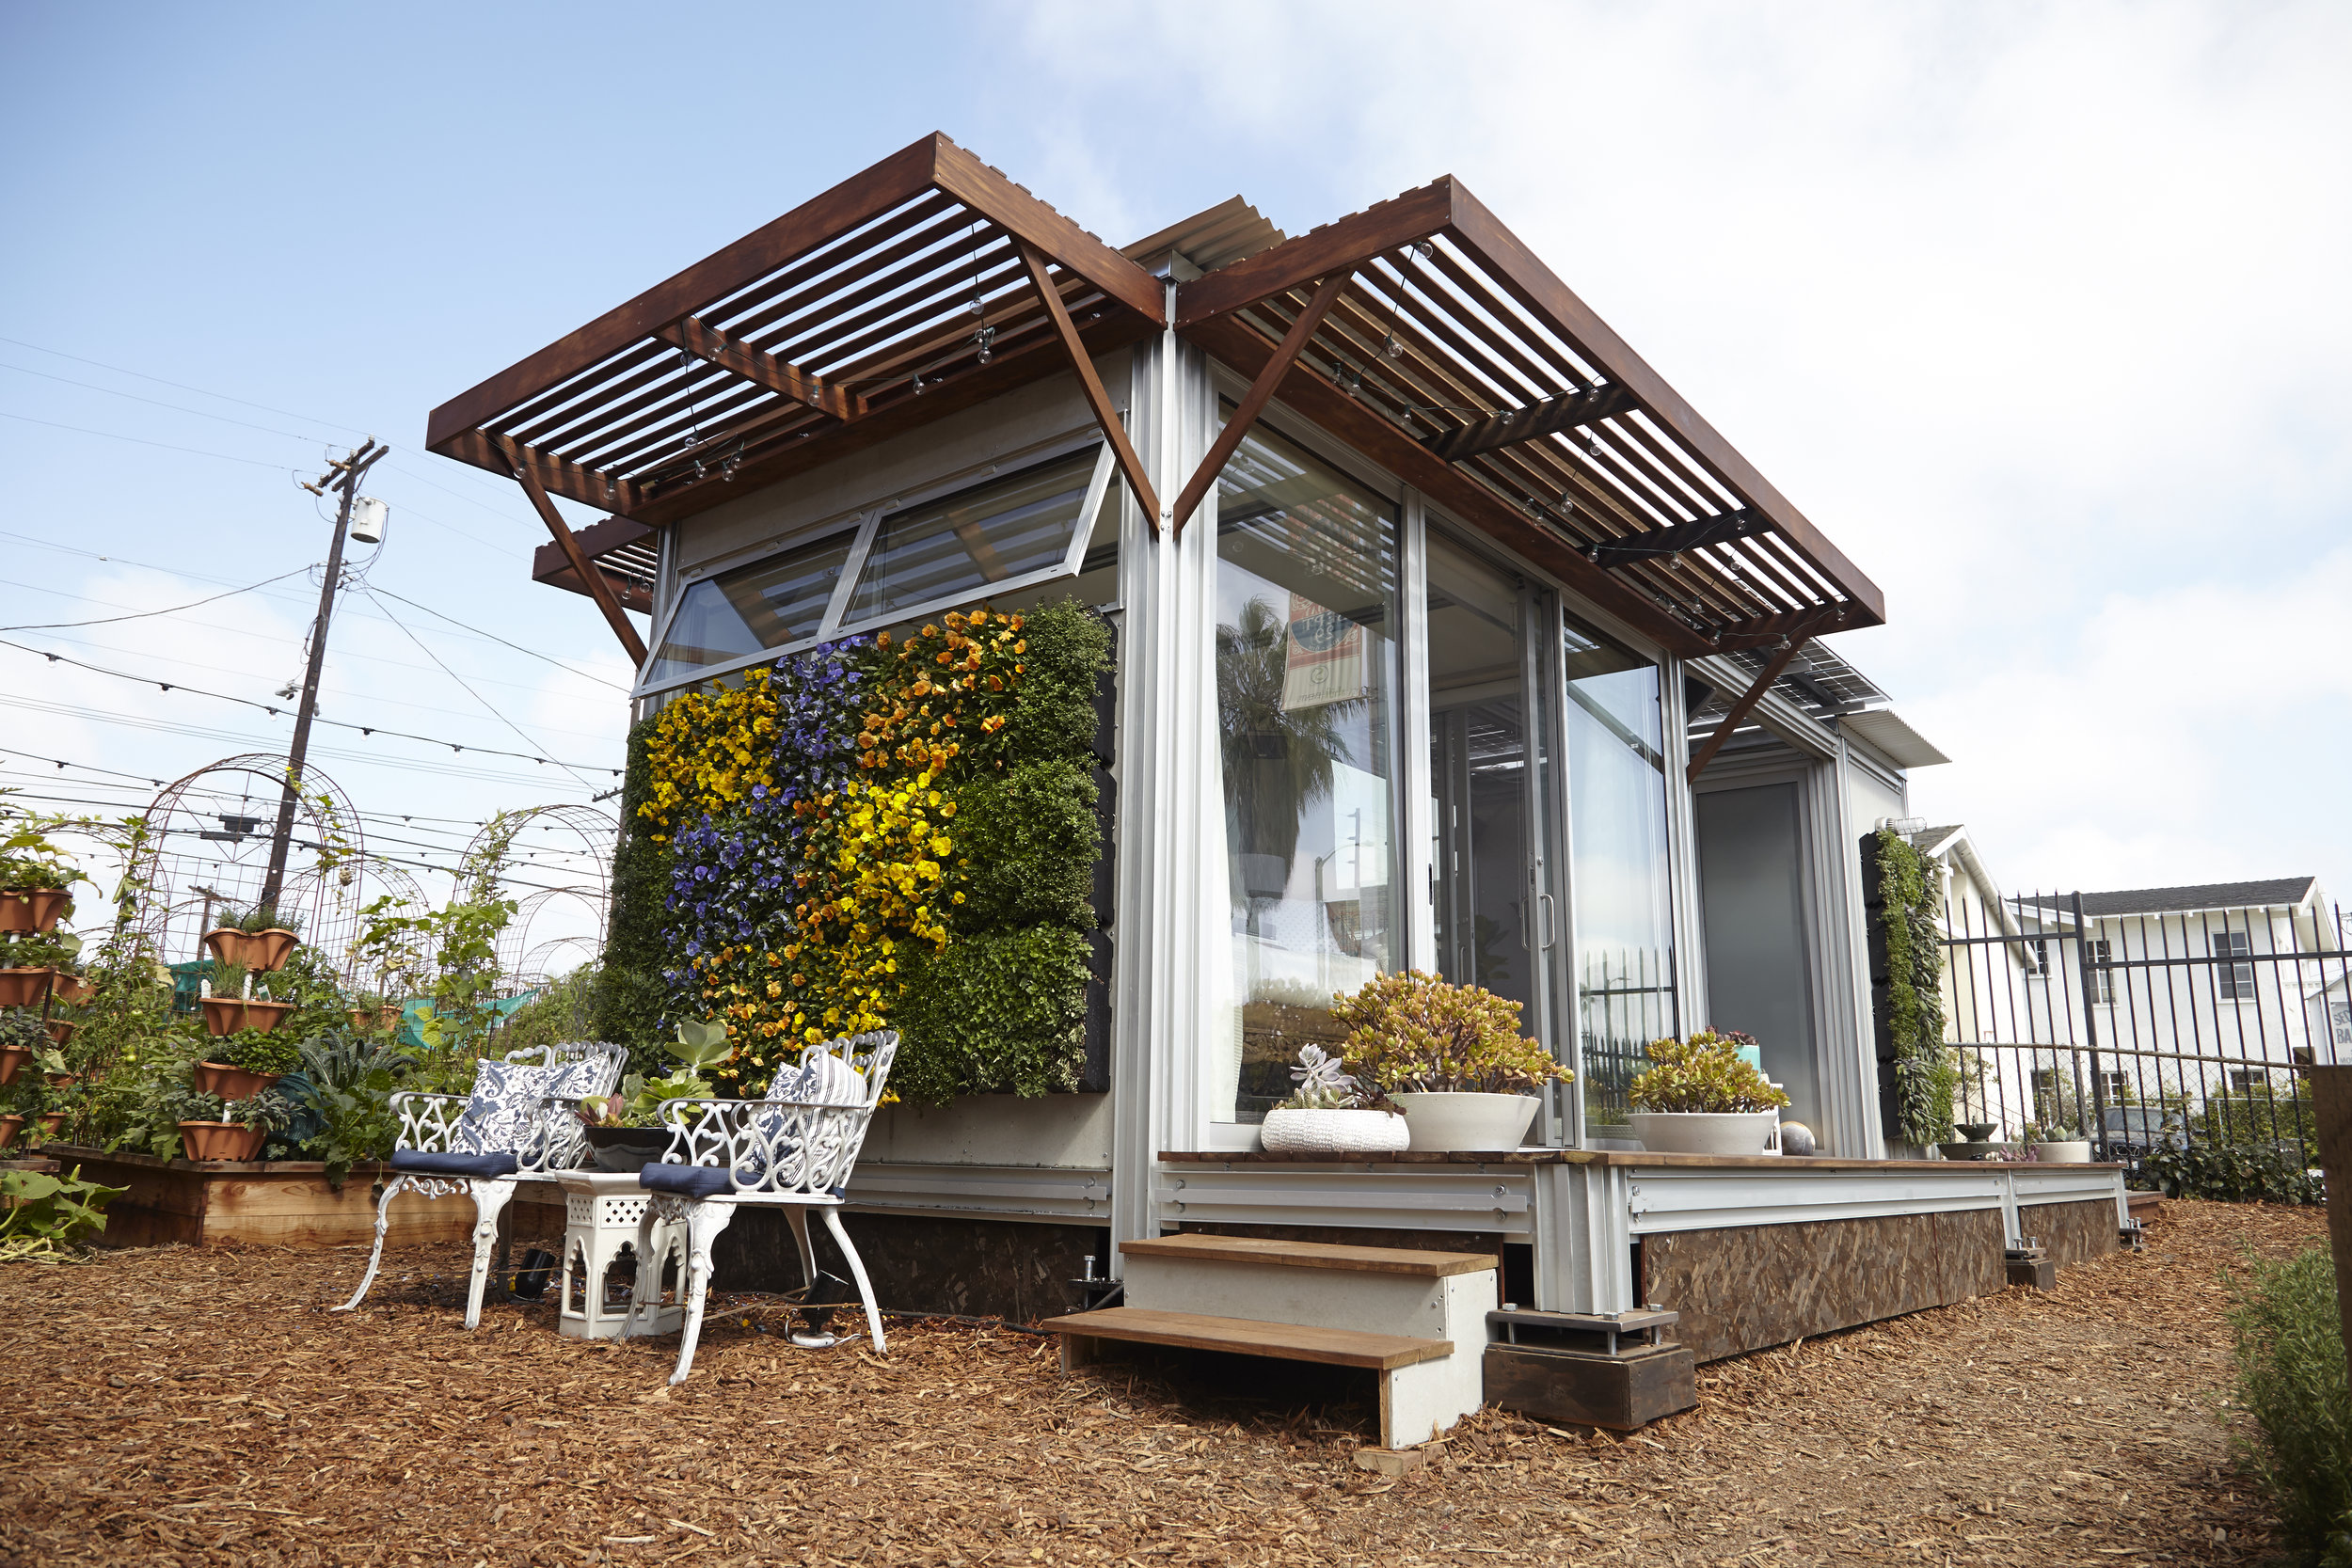 S.E.A.-Studio-Environmental-Architecture-David-Hertz-FAIA-Airbnb-Ecopod-Venice-Beach-California-sustainable-regenerative-restorative-green-design-passive-systems-natural-ventilation-radiant-solar-panels-greenwall-installation-Abbot-Kinney-modern-5.jpg